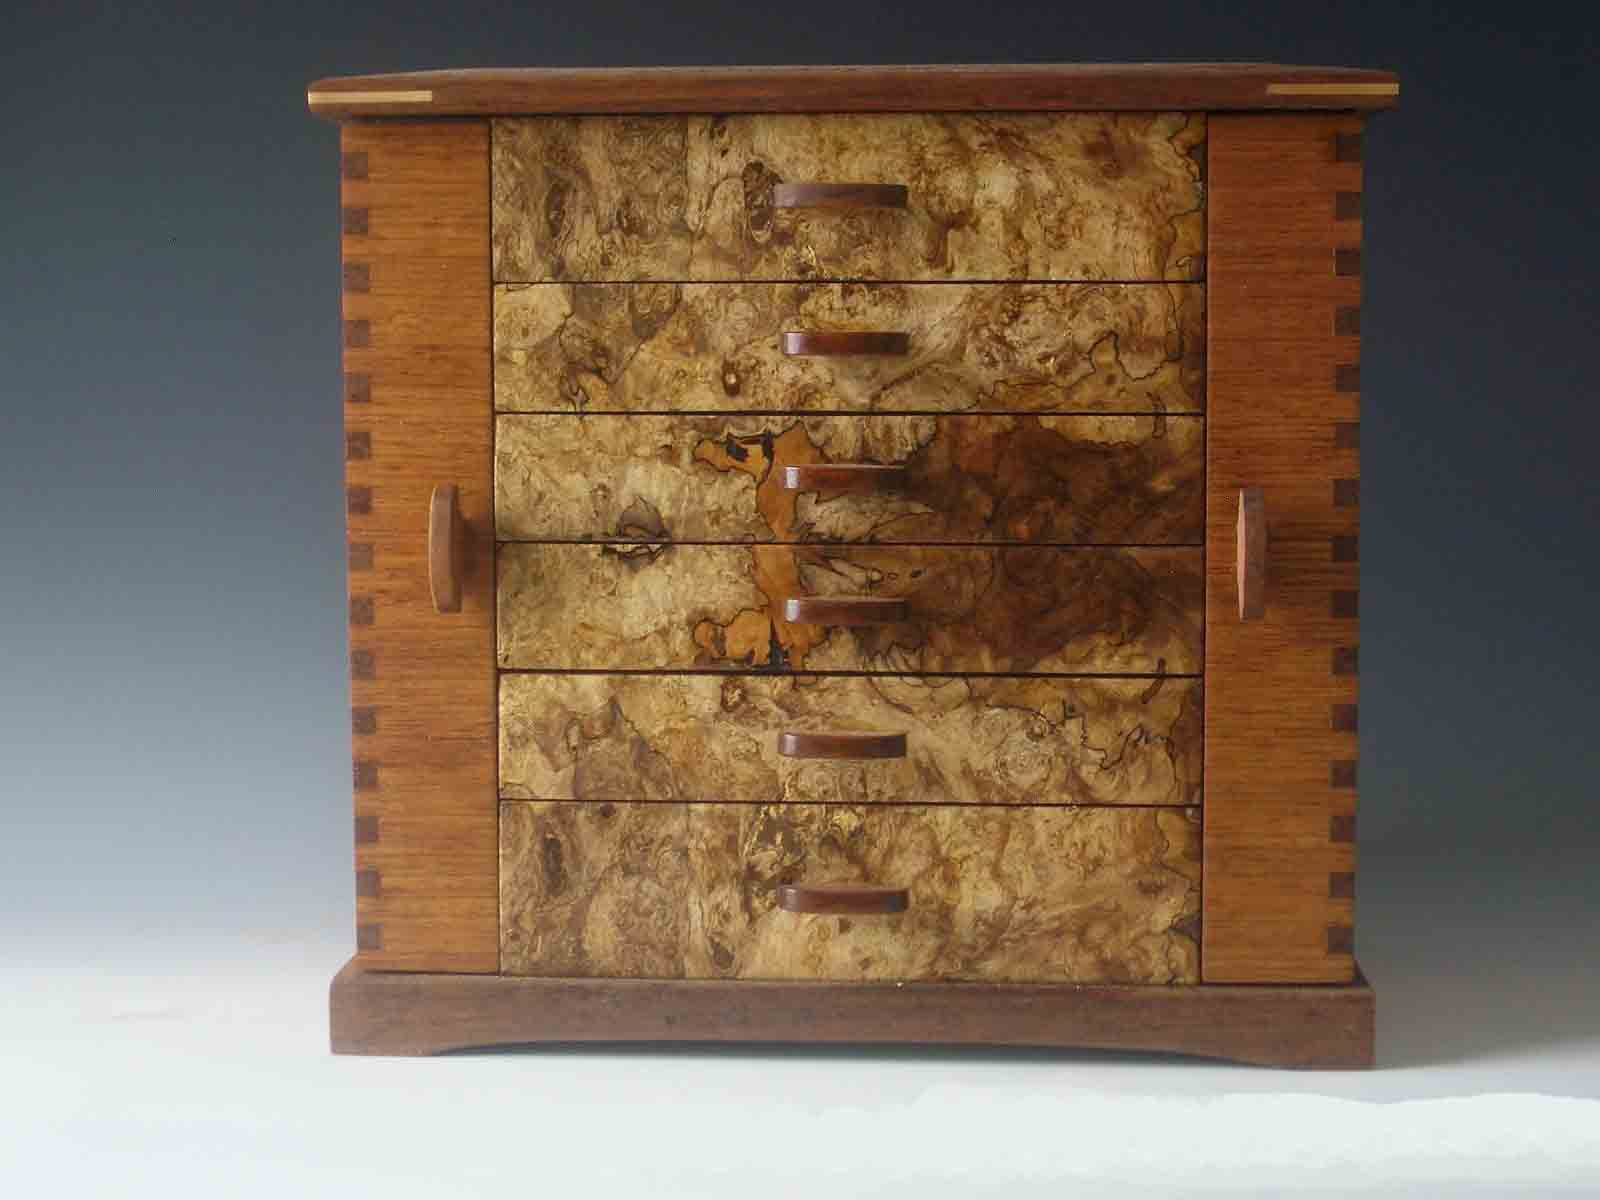 Handmade standing jewelry box made of cherry wood and burl; with two side doors and six drawers